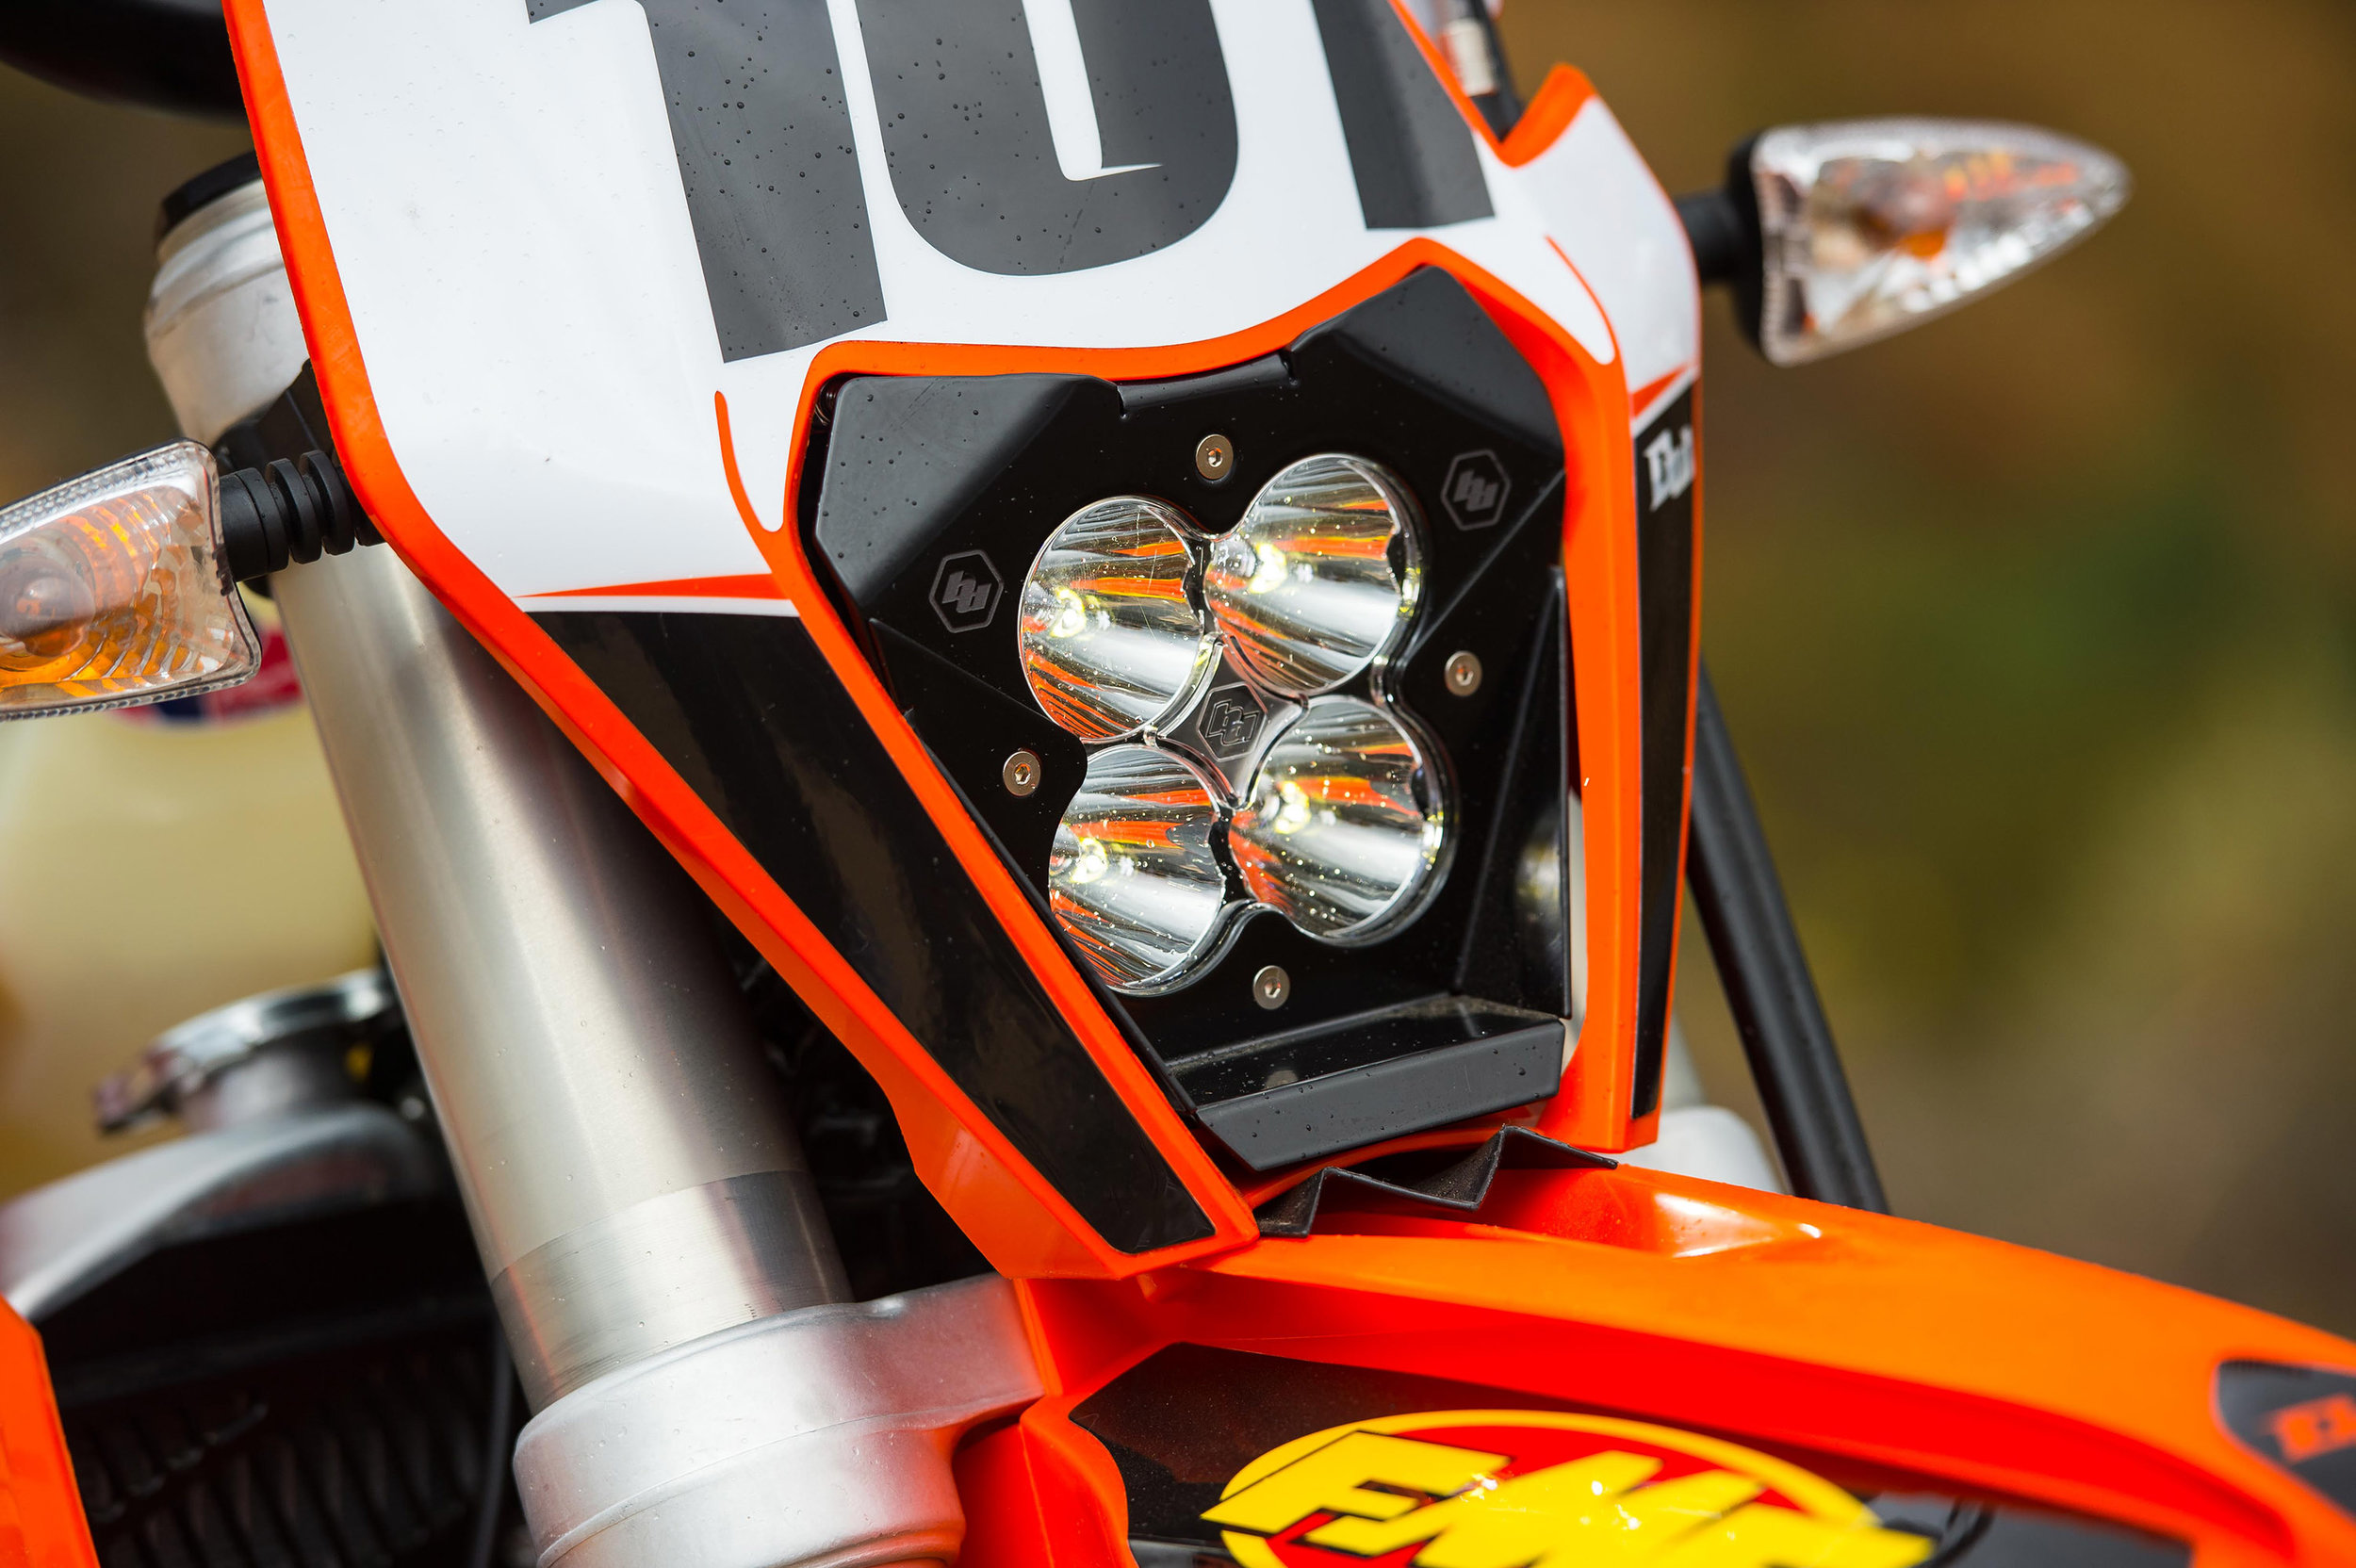 2017KTM350EXCProject-Cudby-002.JPG